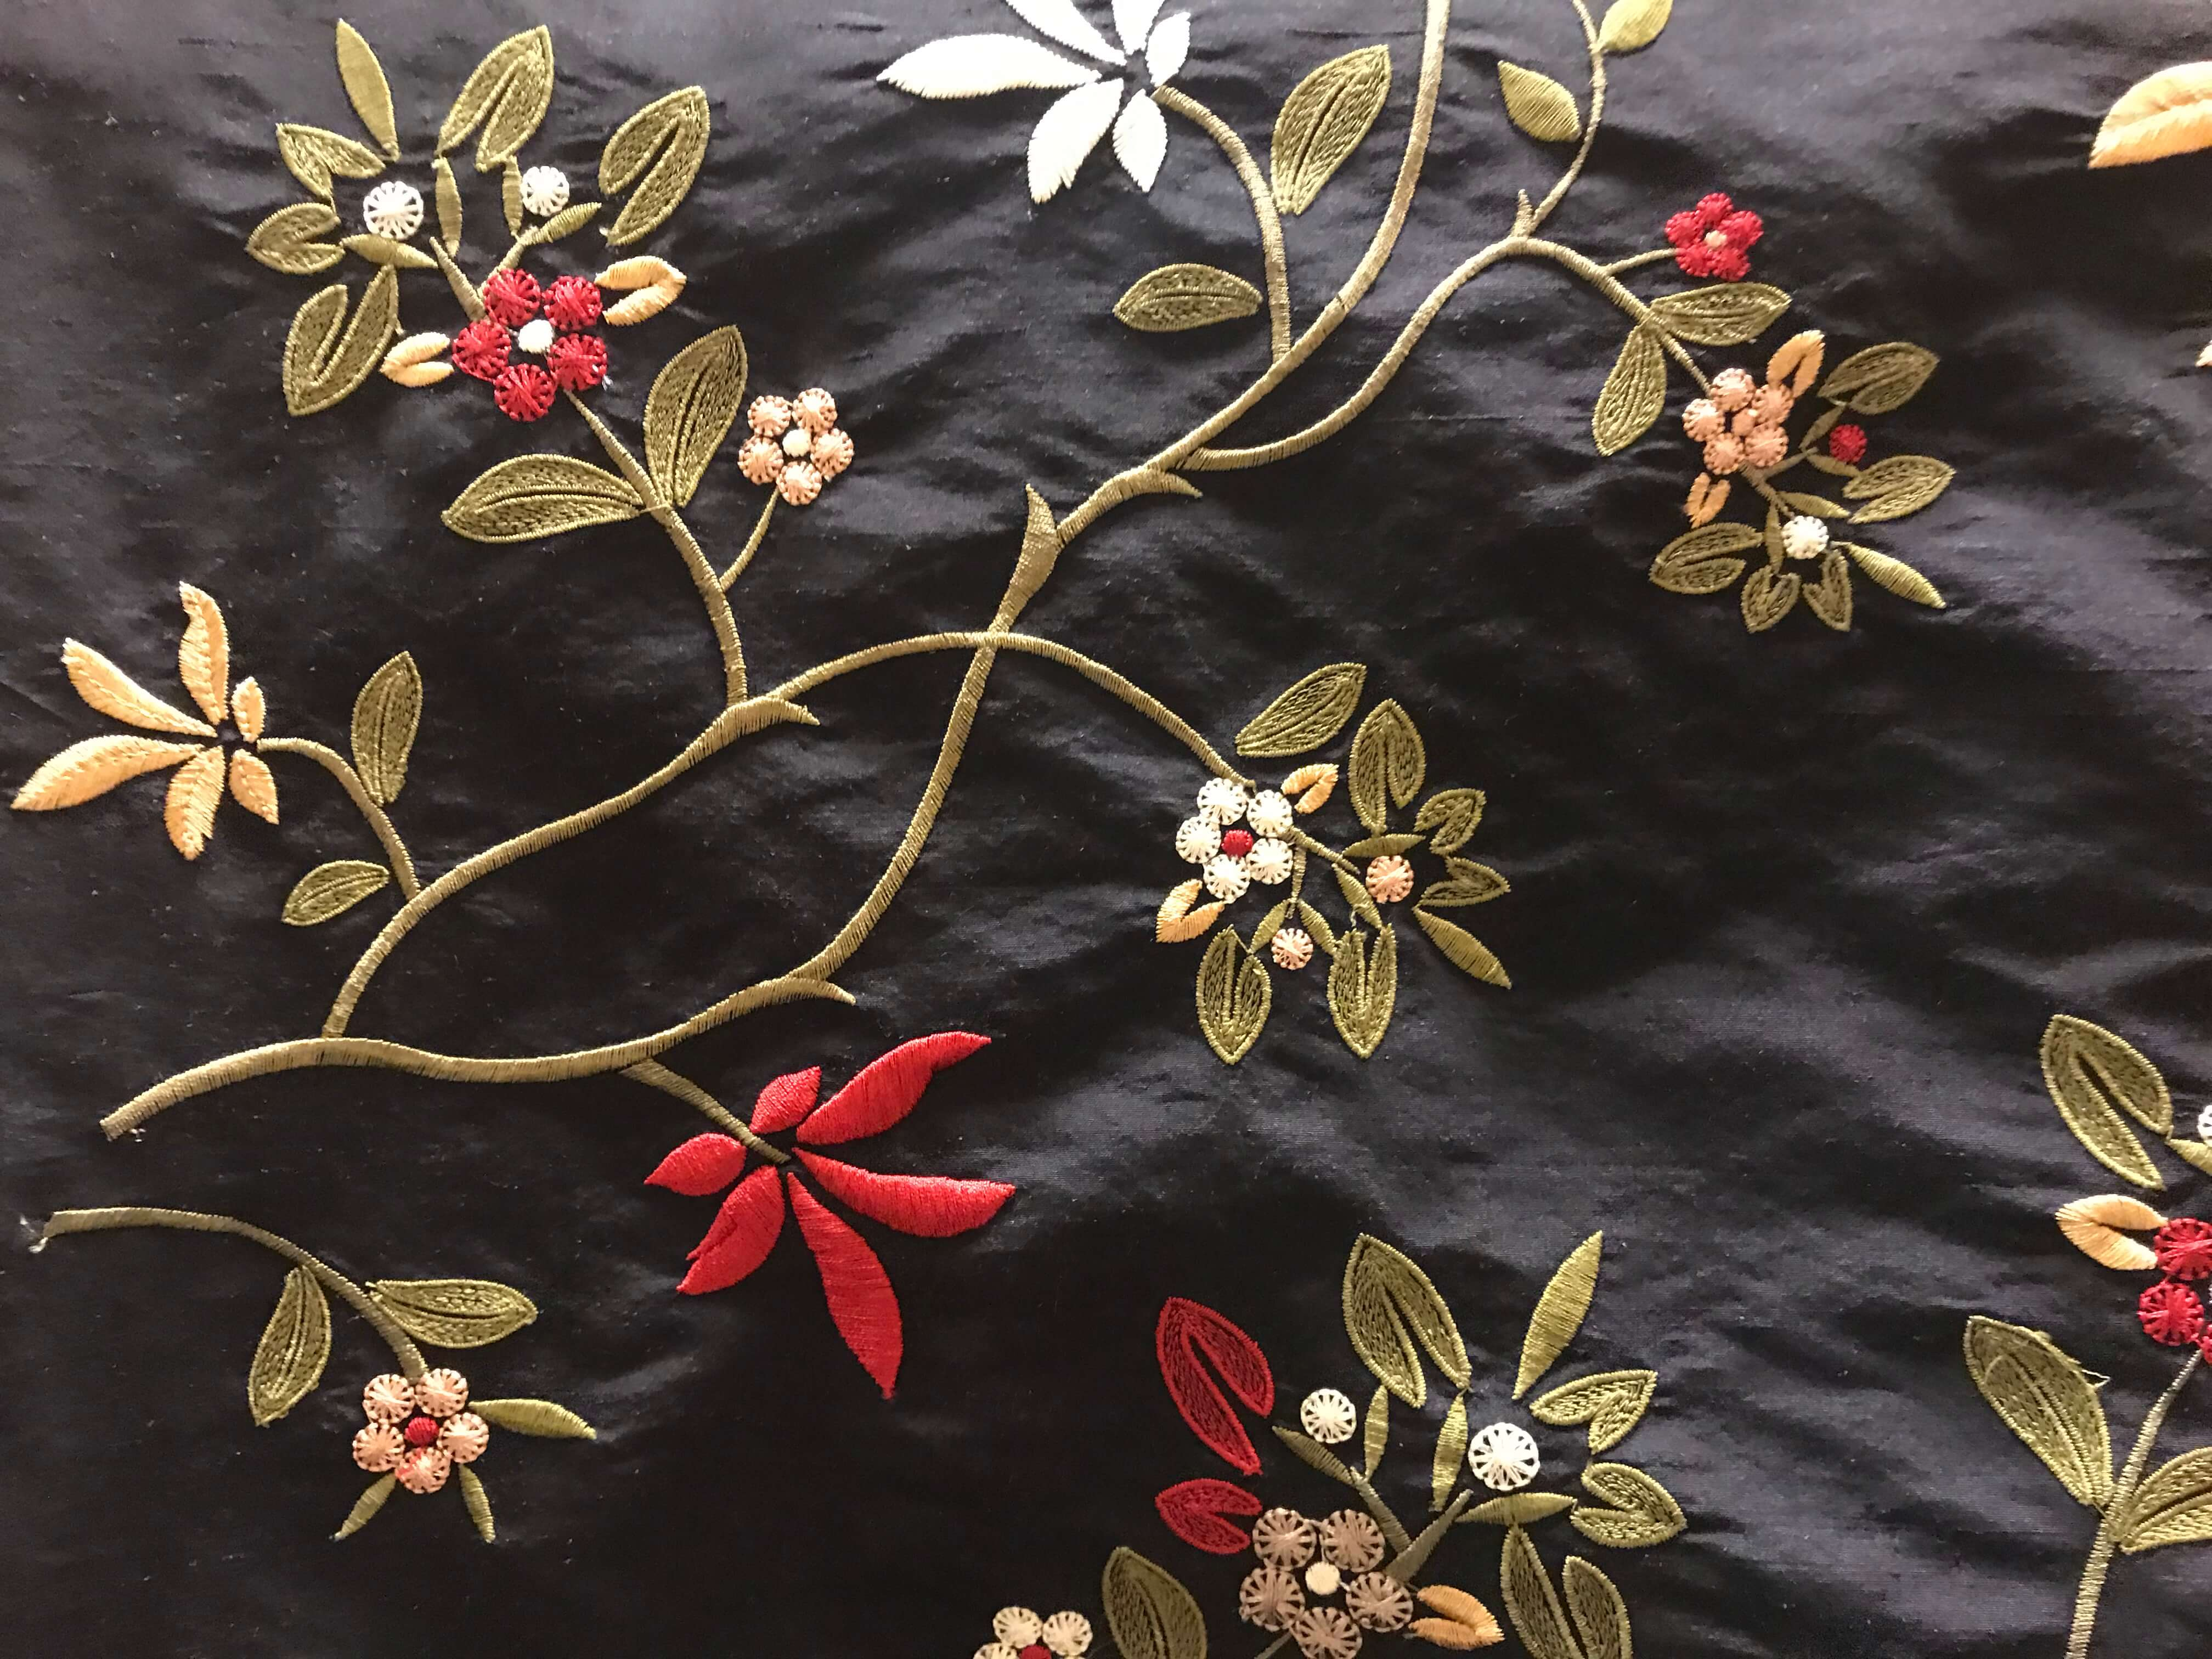 Flower Embroidery on Fabric by Manhattan Textiles - Interior Designer in Milwaukee, WI